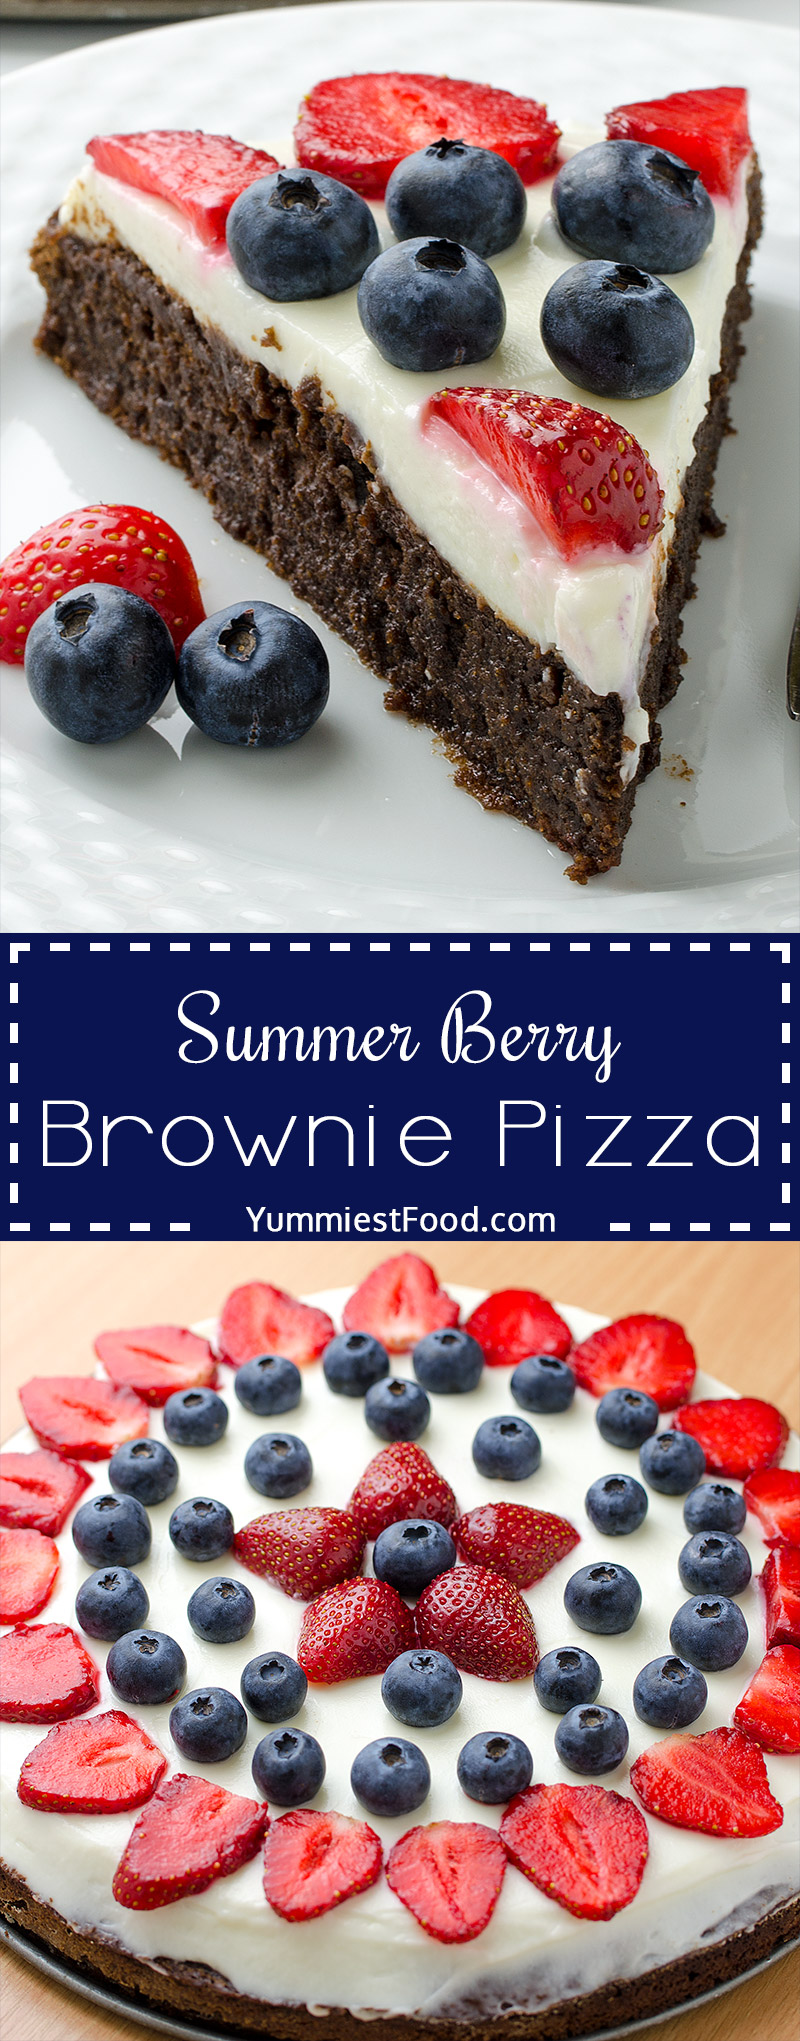 Summer Berry Brownie Pizza - sweet dessert pizza with delicious brownie crust topped with cream cheese frosting and loaded with lots of berries